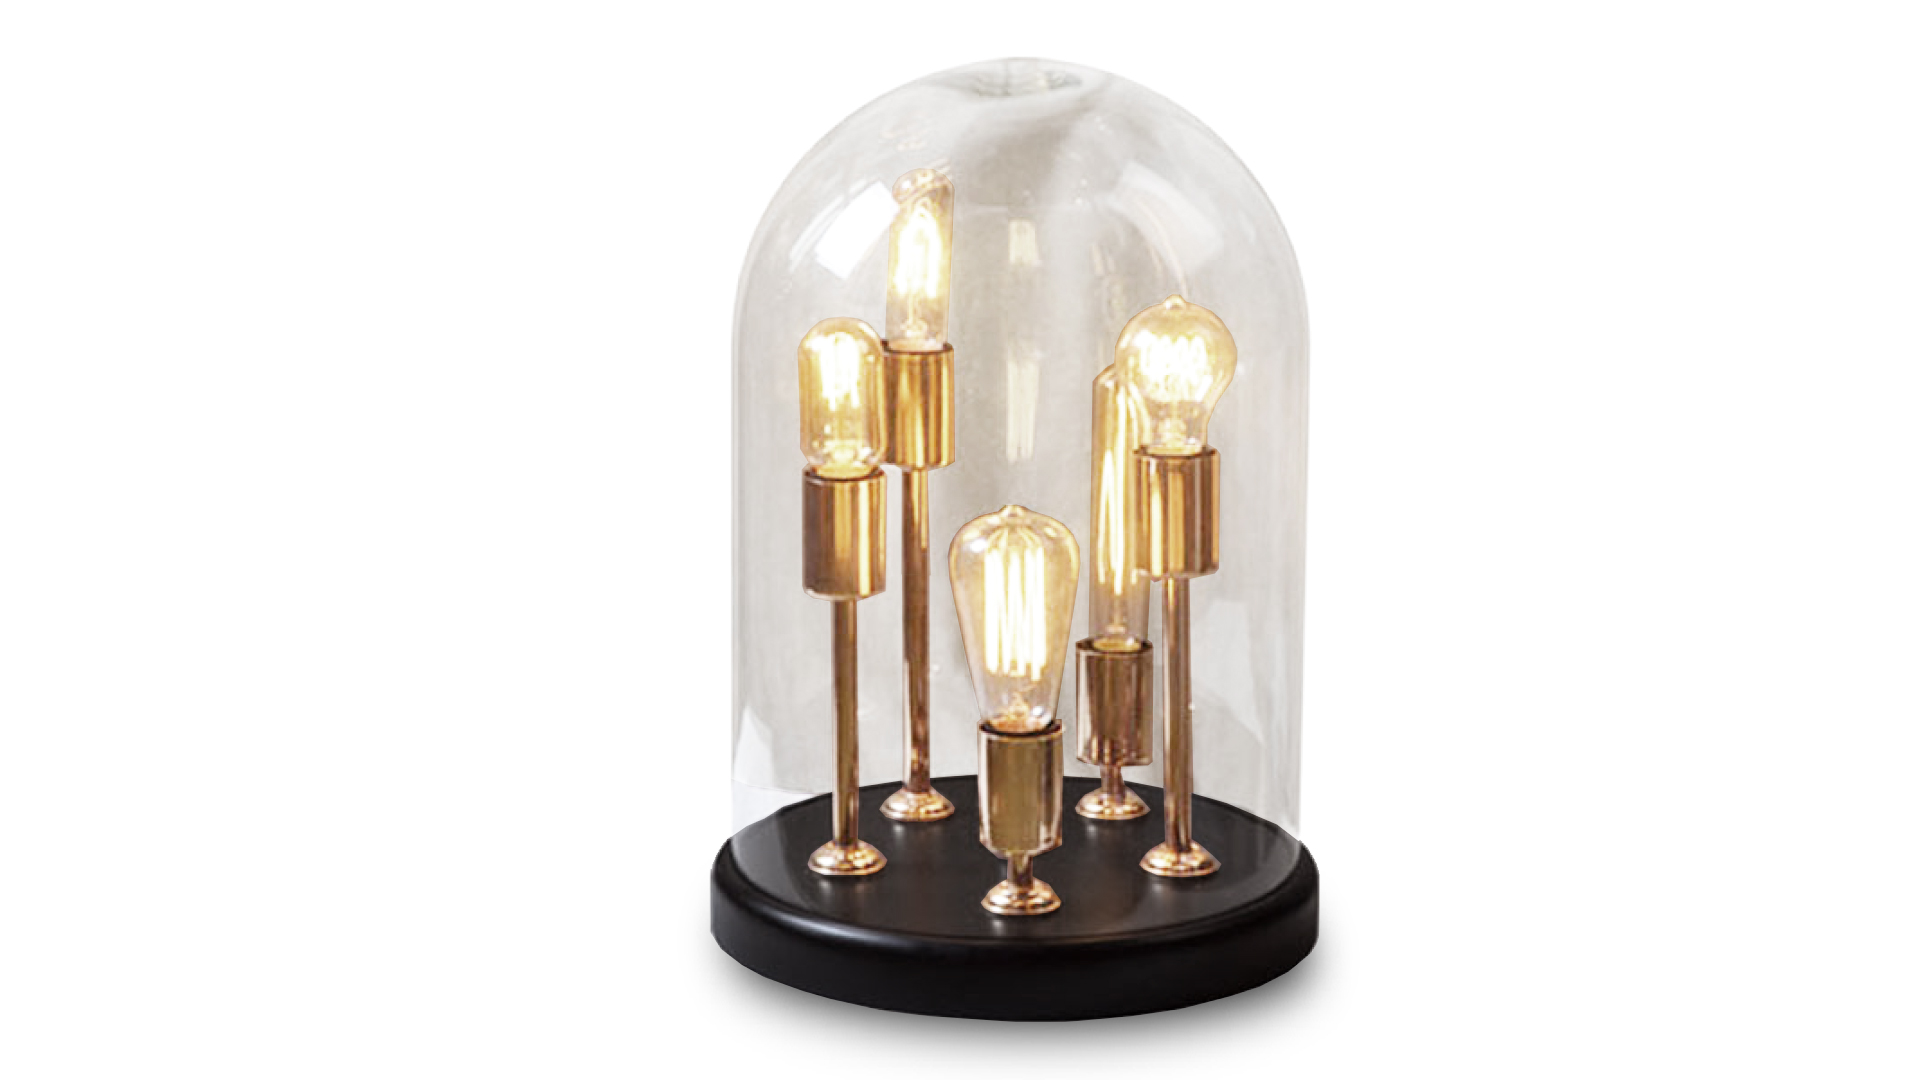 lampe de table cloche verre 5 ampoules filaments zacchary mobiliermoss le blog mobilier moss. Black Bedroom Furniture Sets. Home Design Ideas